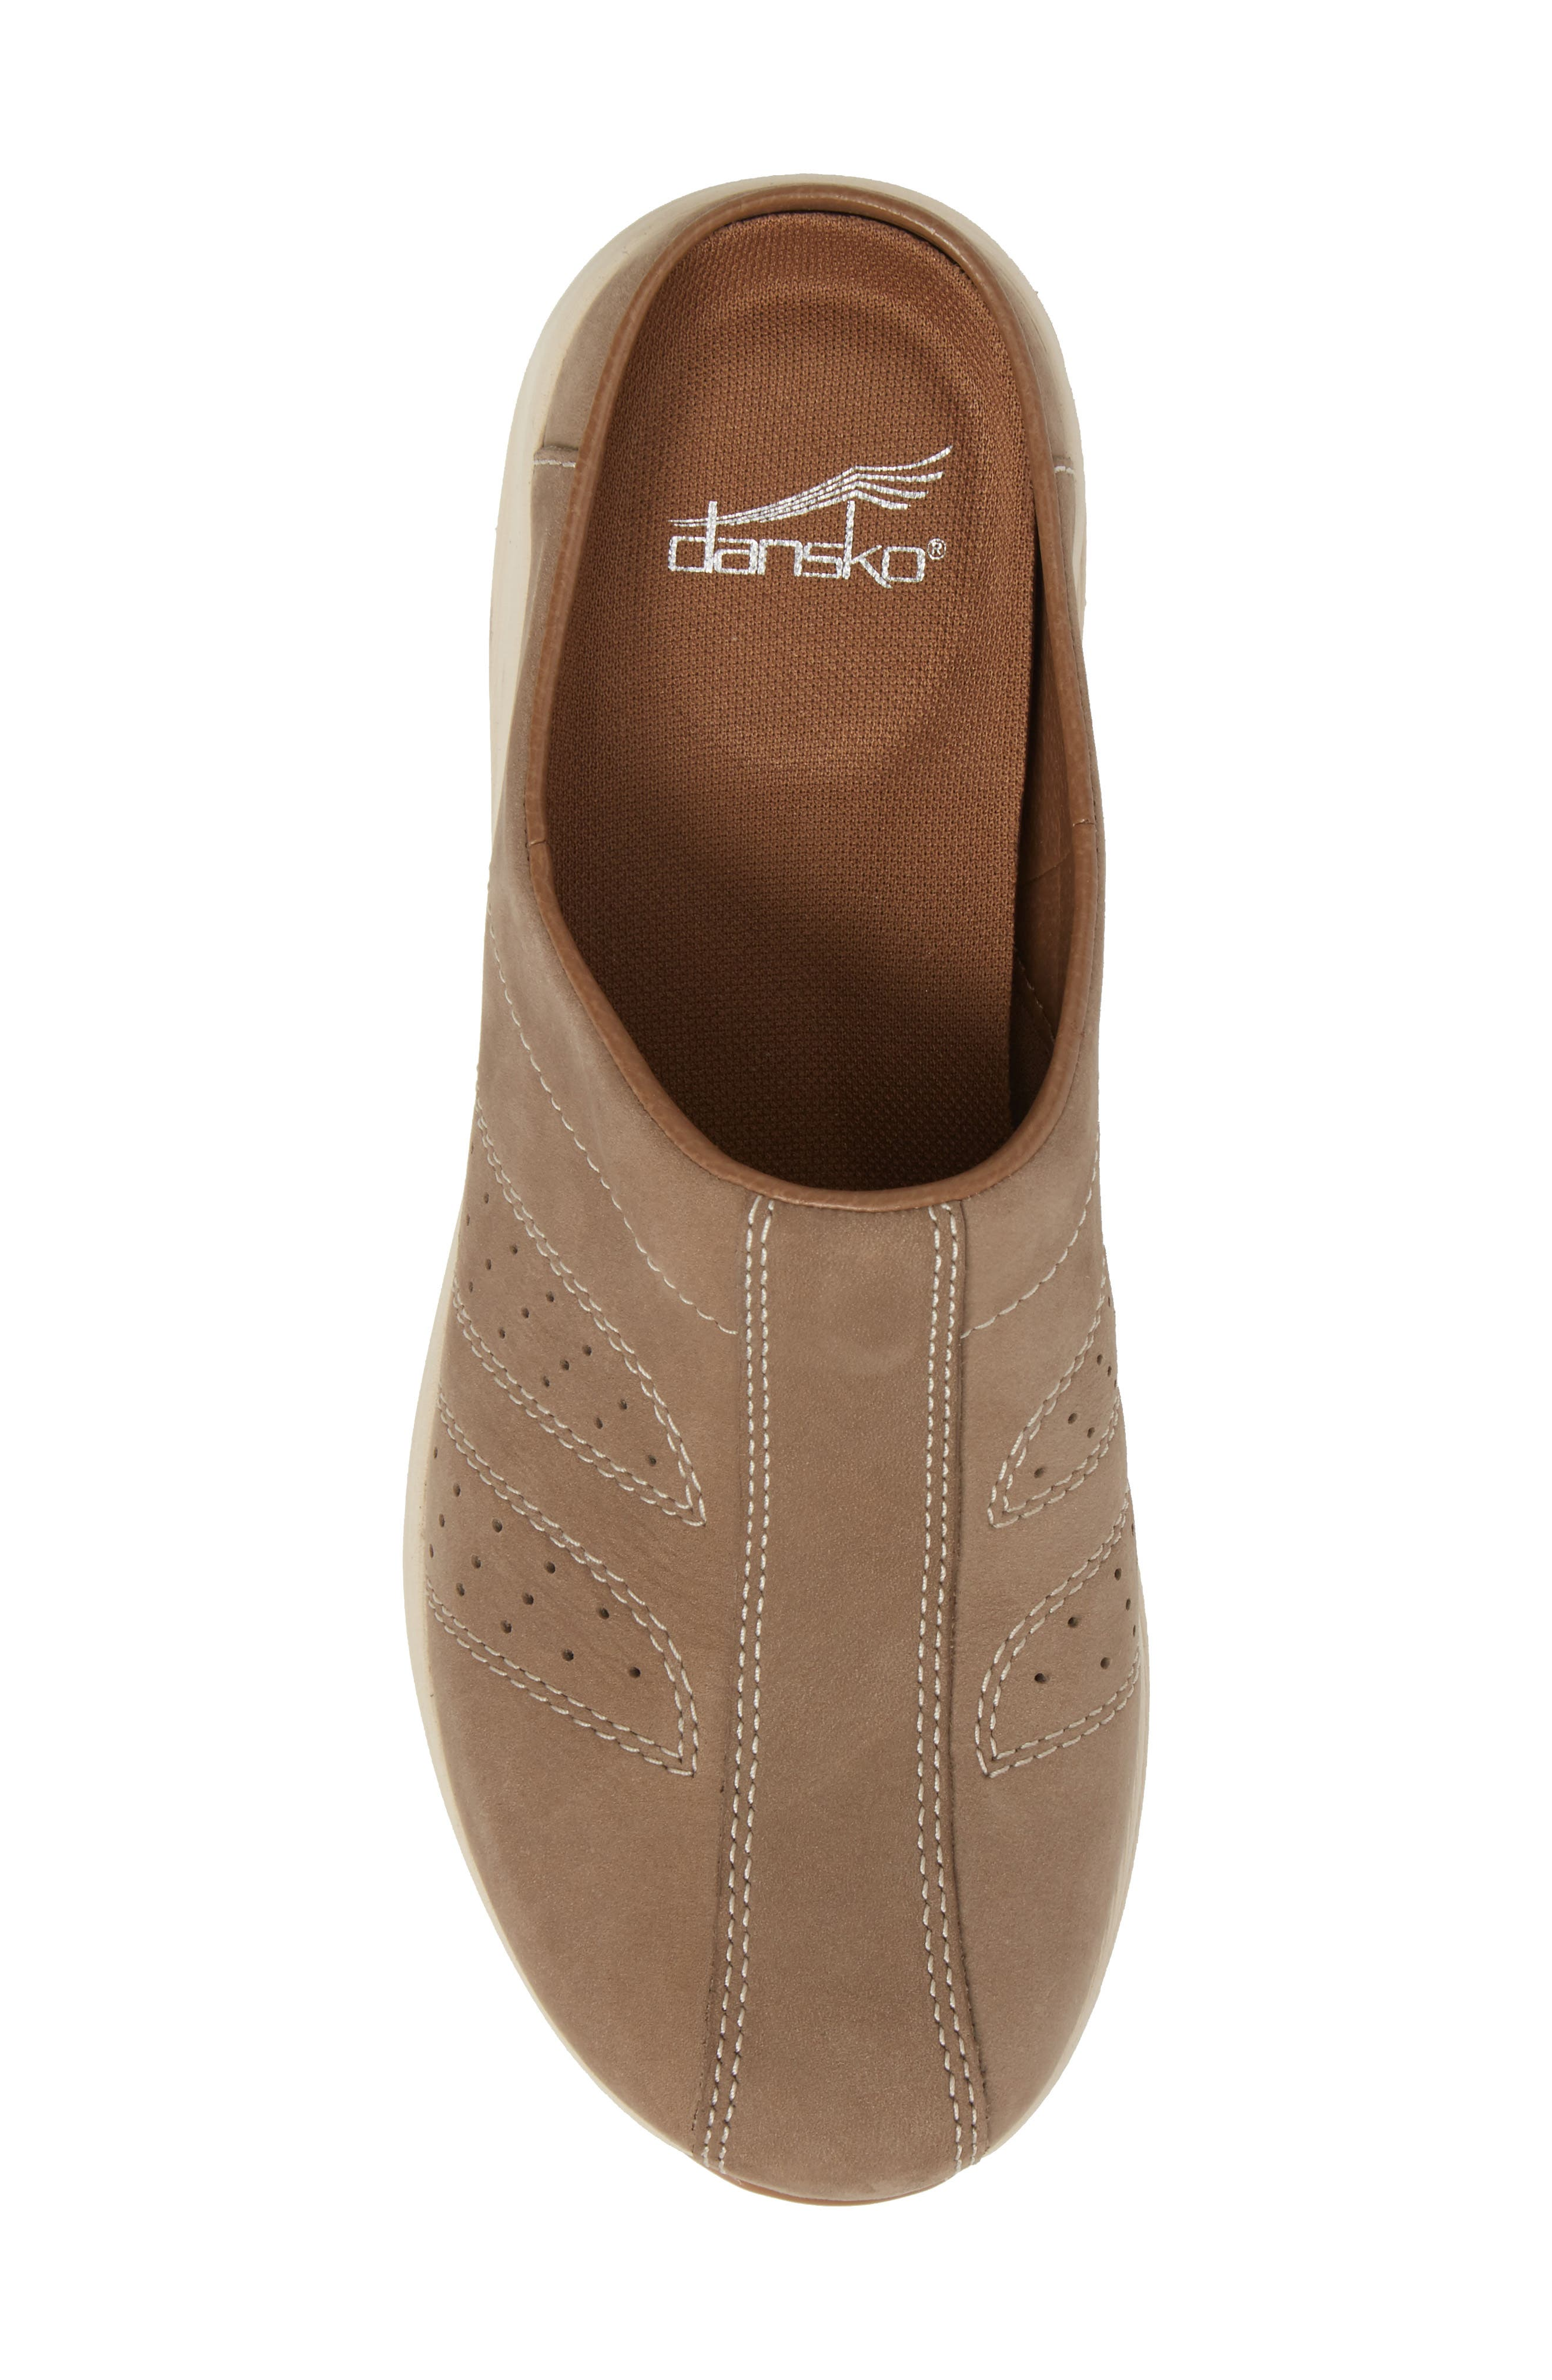 Dankso Shelly Mule,                             Alternate thumbnail 5, color,                             TAUPE MILLED NUBUCK LEATHER